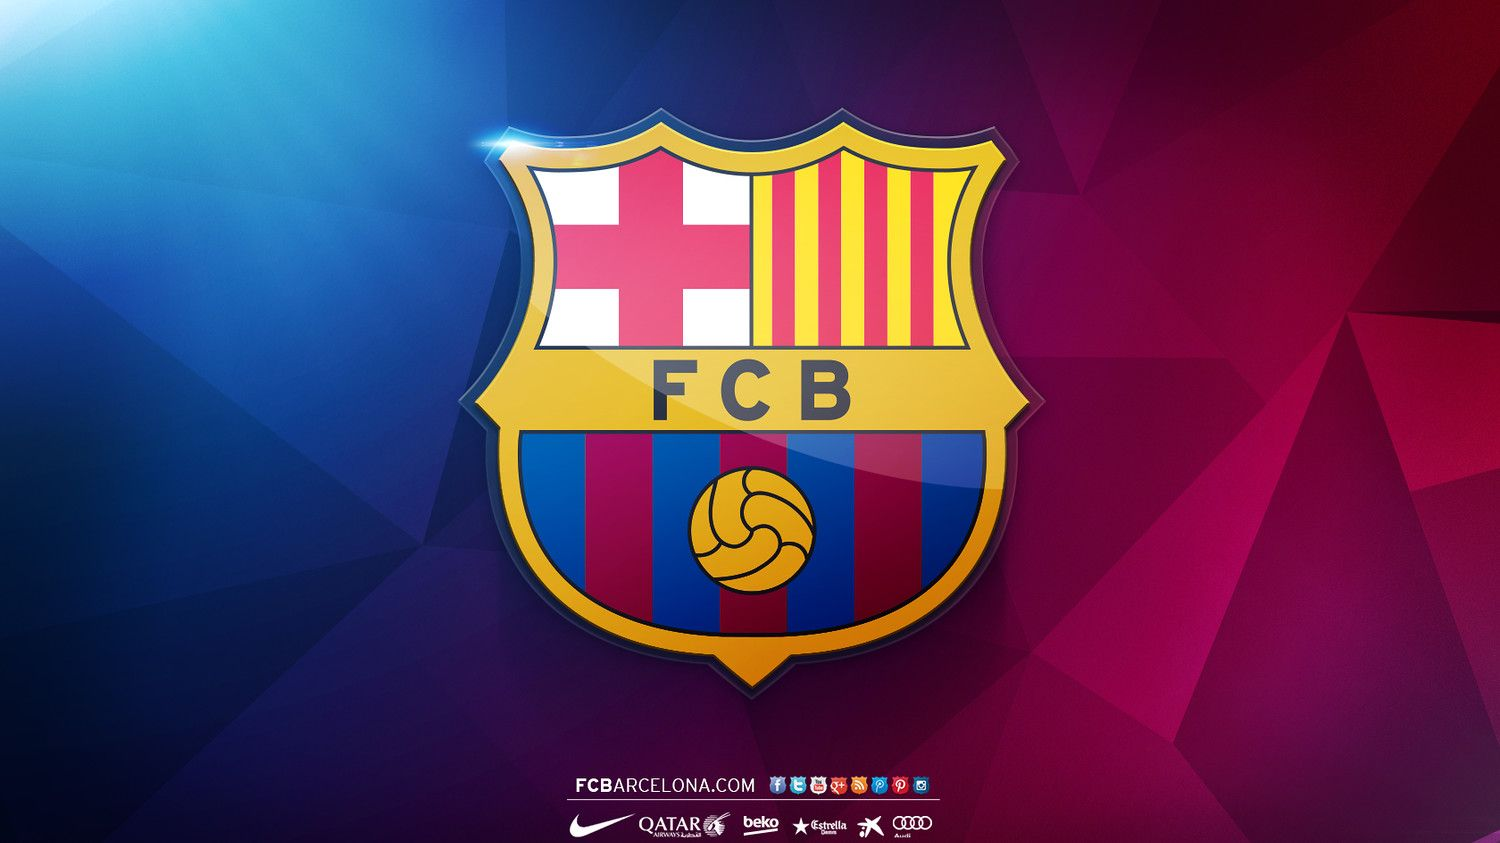 Fondos De Pantalla Del Fútbol Club Barcelona Wallpapers: Escudo FCB - Wallpapers ROBERTO MELGAR